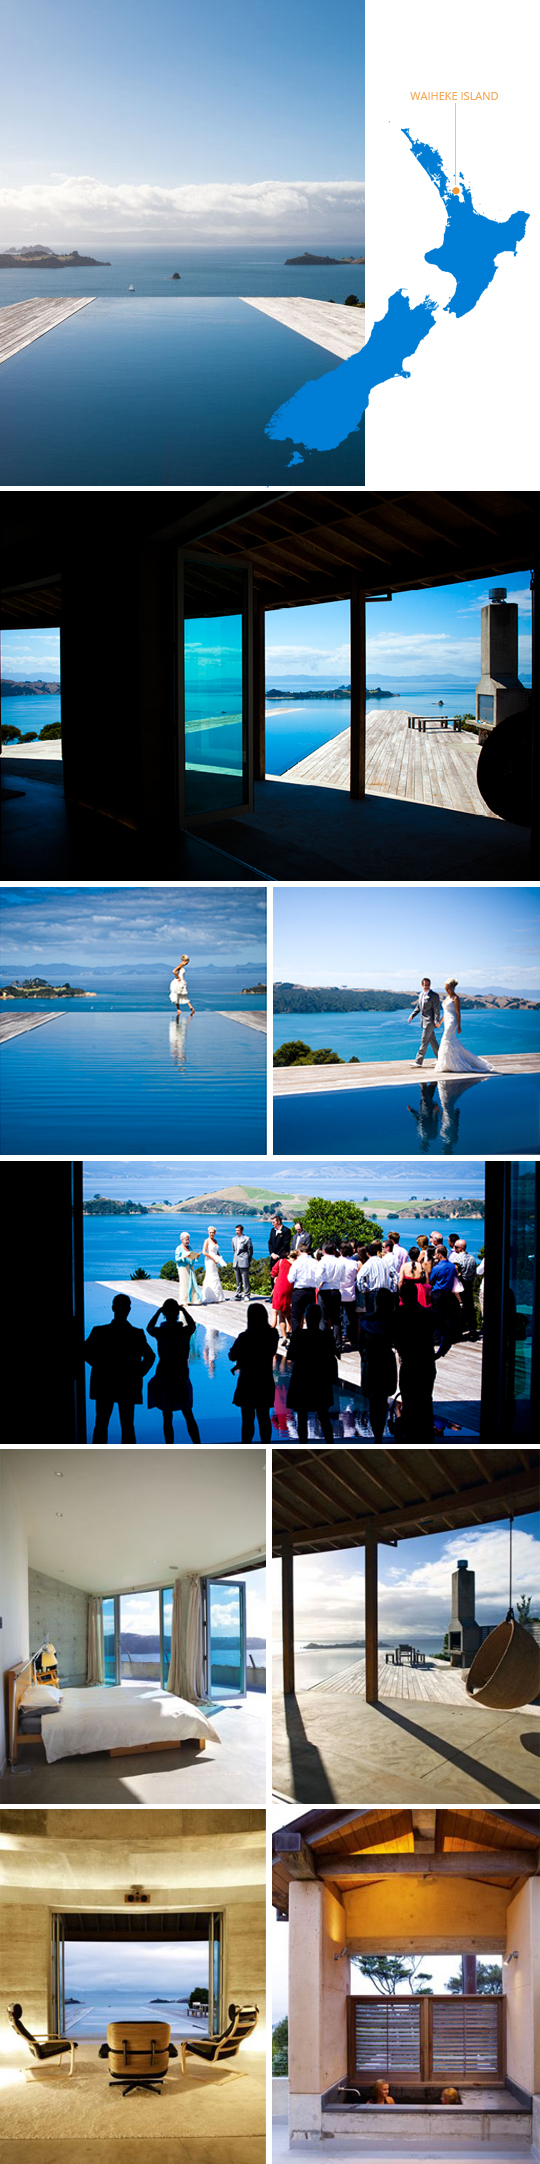 Waiheke Island, New Zealand, Home, View, Bay, Stunning, Spectacular, Beautiful